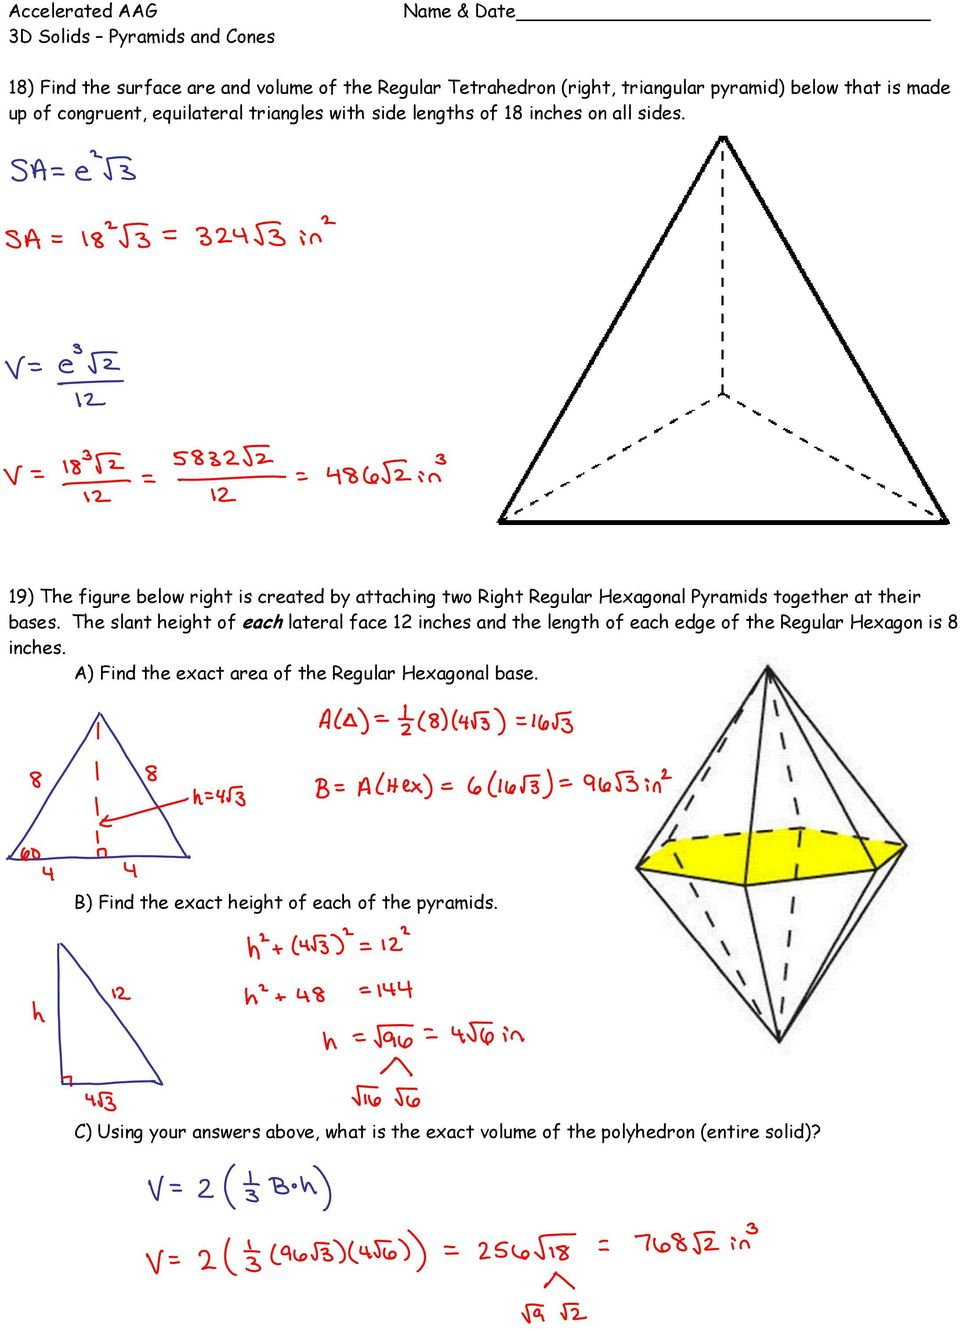 19) The figure below right is created by attaching two Right Regular Hexagonal Pyramids together at their bases.